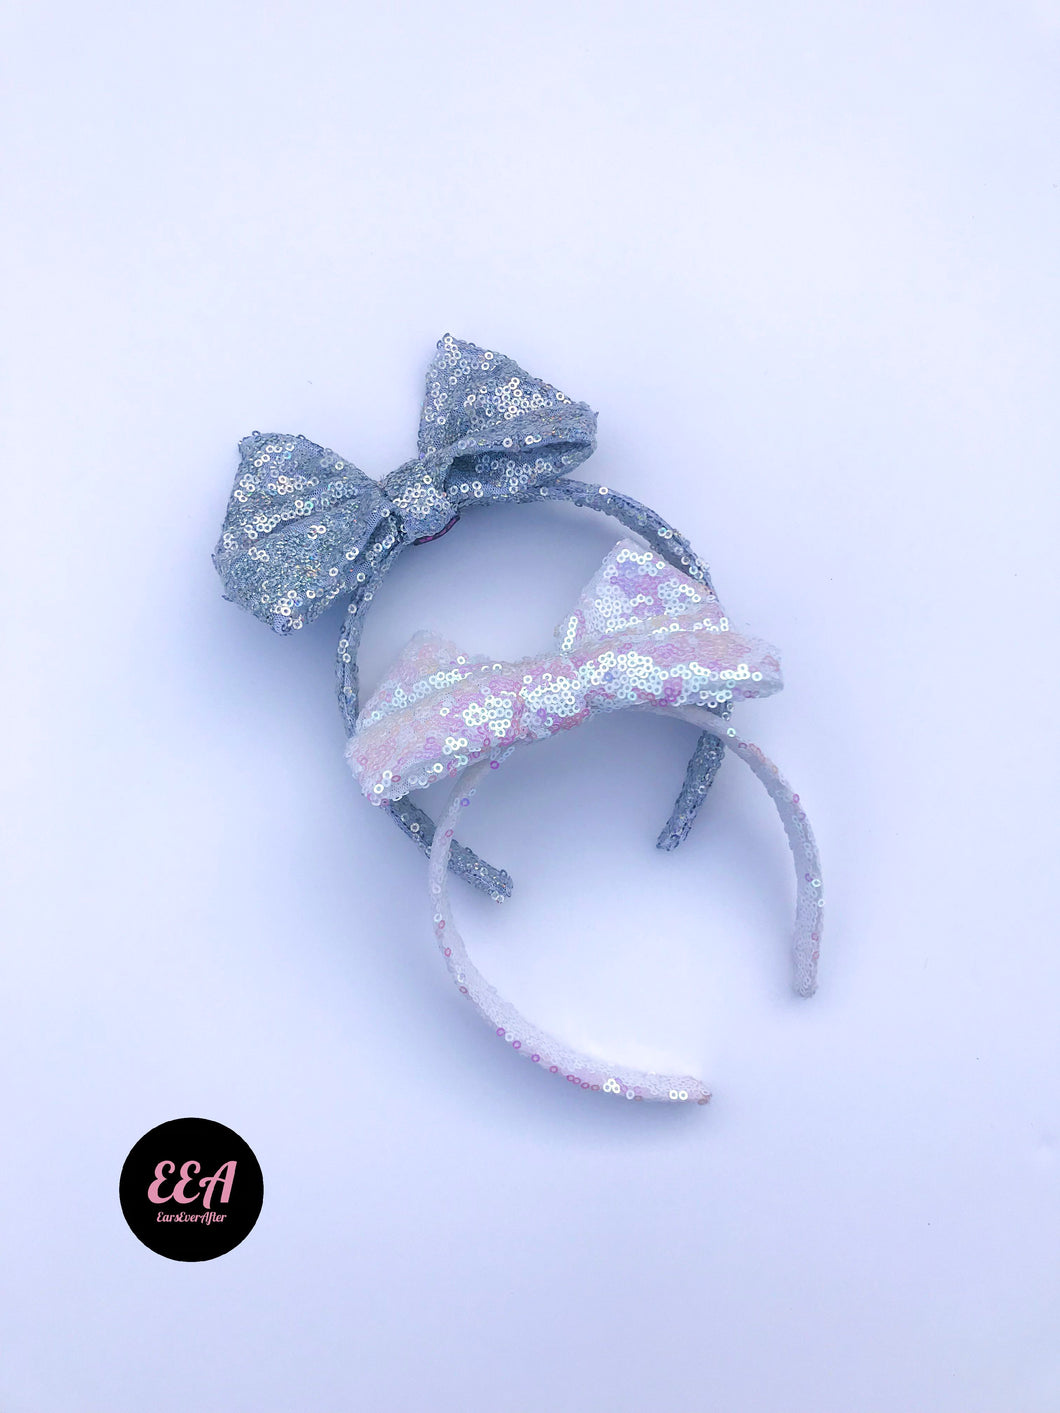 Ears Ever After, Disney Ears, Minnie Mouse Ears, Mickey Ears, Custom Mickey Ears, Mouse Ears, UK Disney Ears, Minnie Ears, Mickey Ears, Disney, Bow Headband, Disney Bow, Sequin Disney Bow, Bow